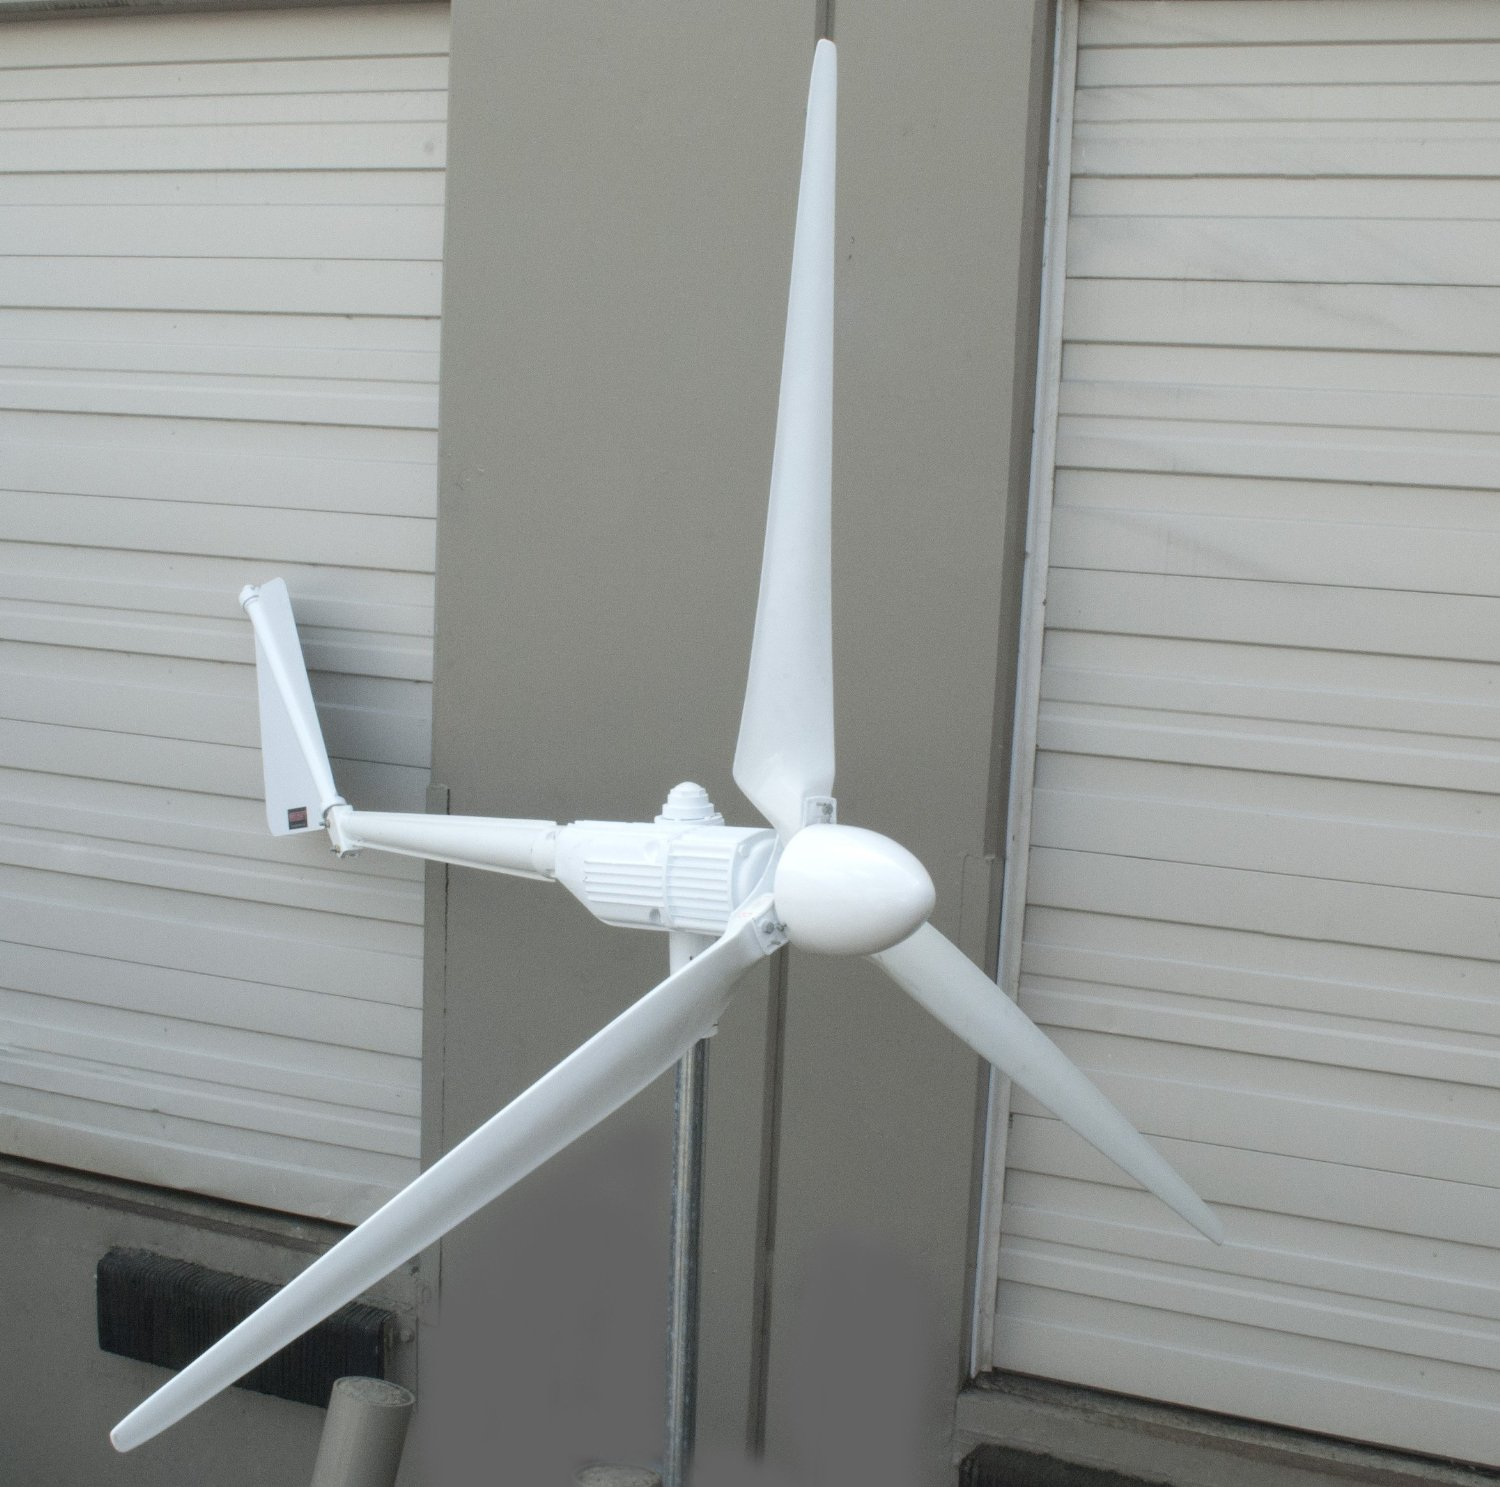 Top 10 best wind turbine generators for home use reviews